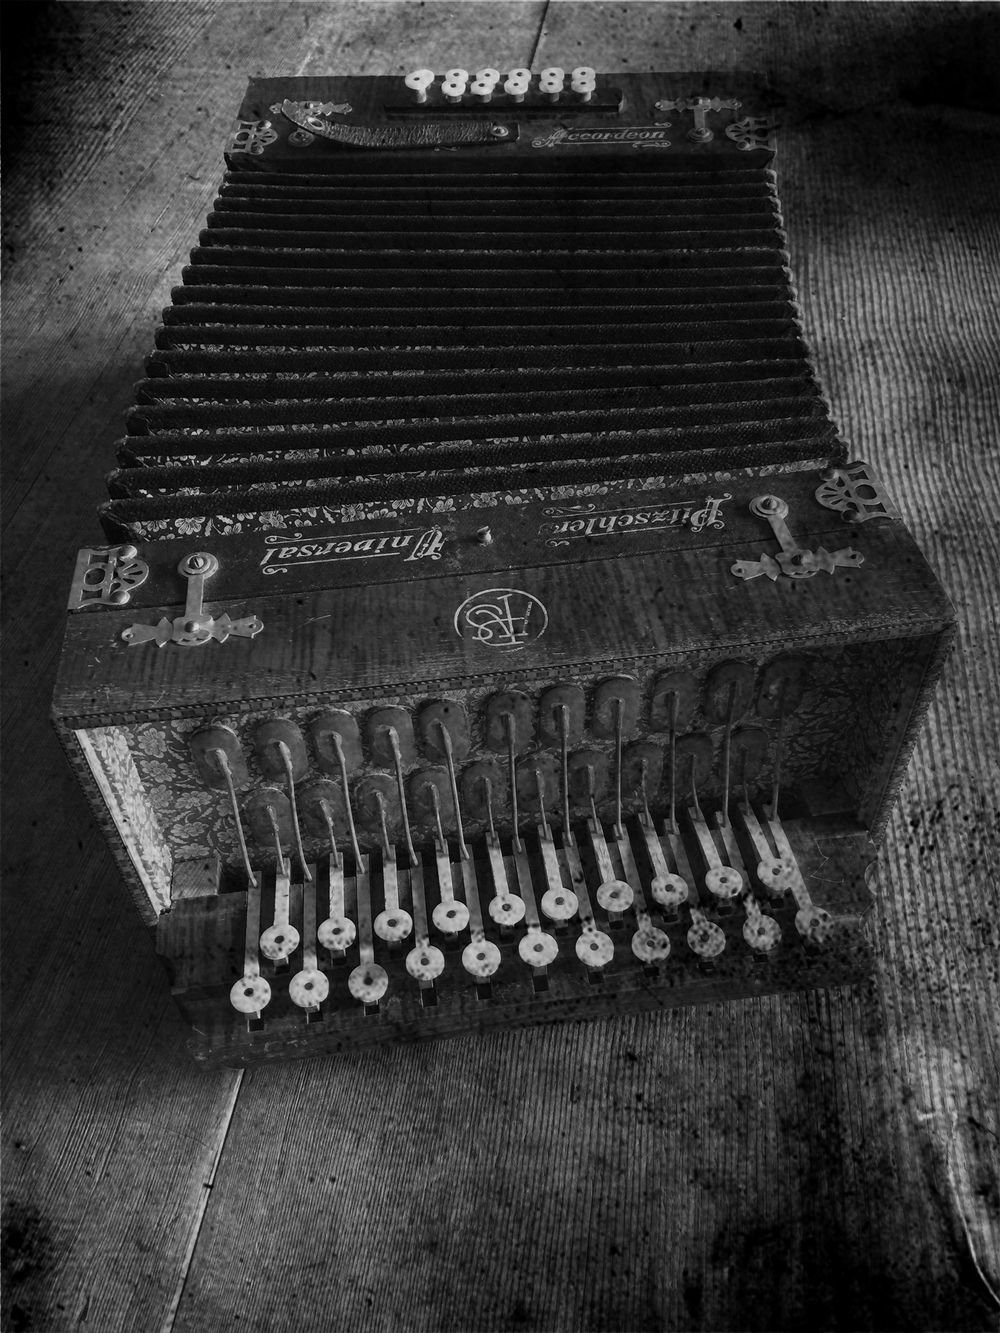 accordianIMG_6947.bw.jpg